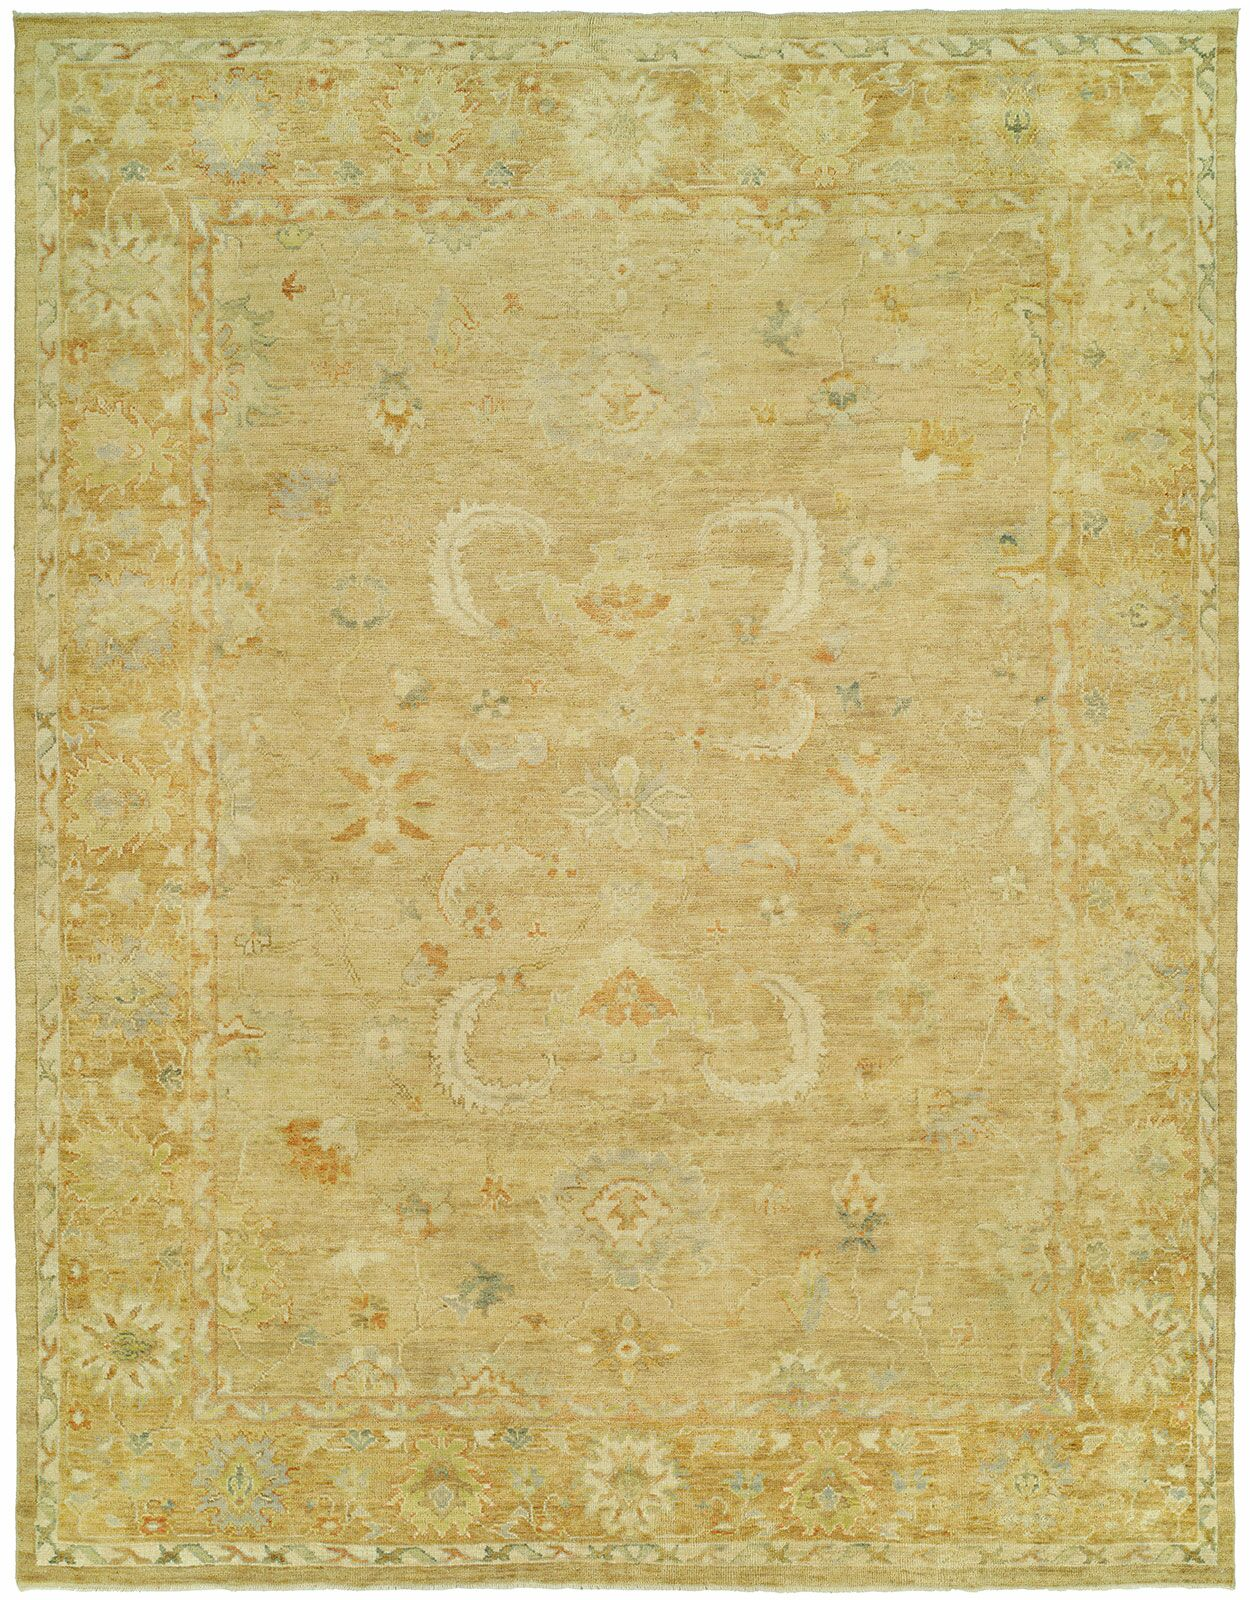 Matheson Hand Knotted Wool Gold Area Rug Rug Size: Rectangle 4' x 6'